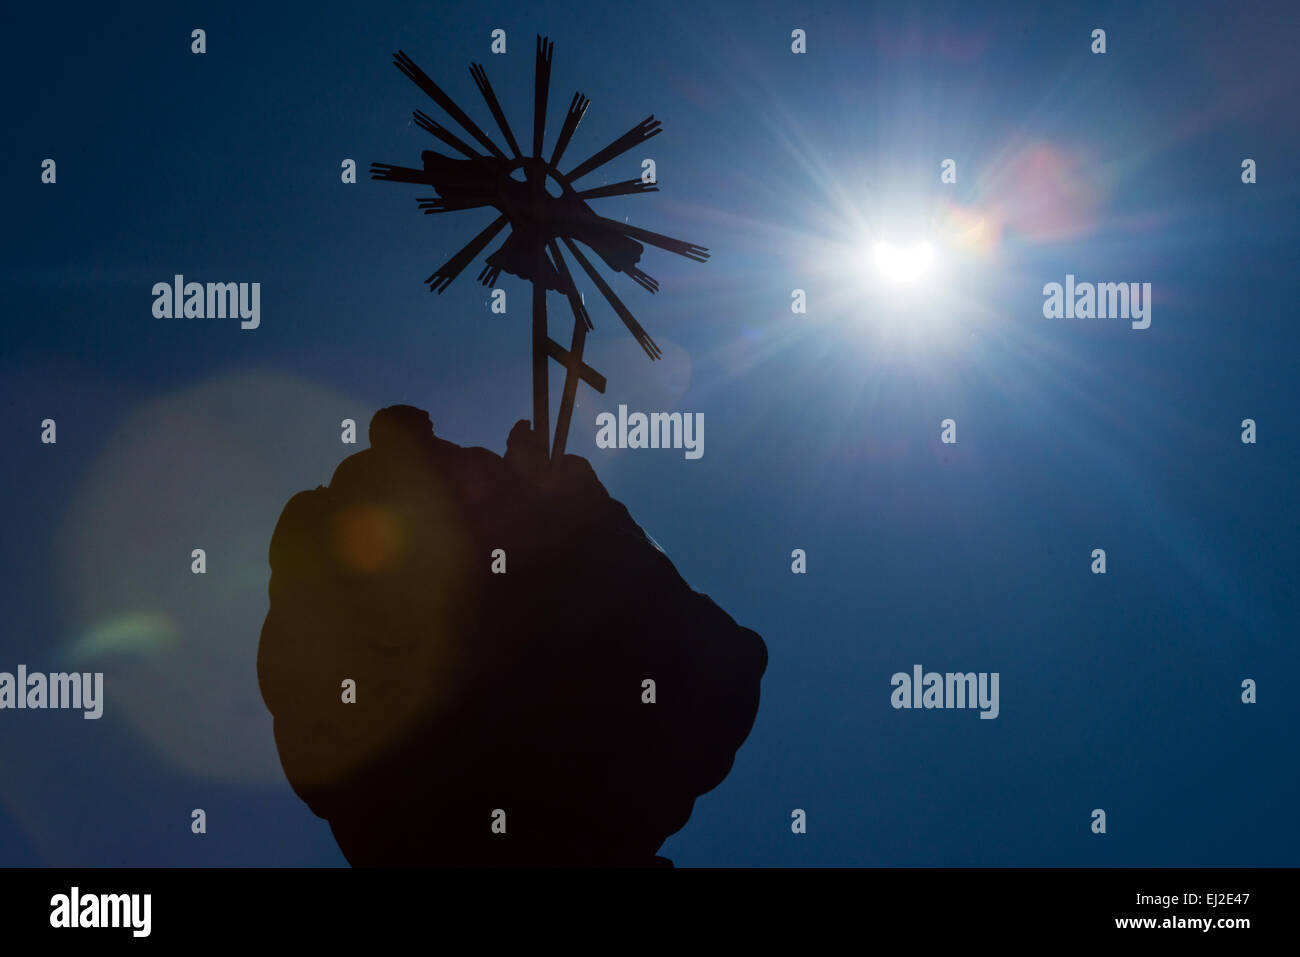 Svaty Jur, Slovakia. 20th March, 2015. Sickle-shaped sun with a  statue during partial solar eclipse in Svaty Jur, - Stock Image